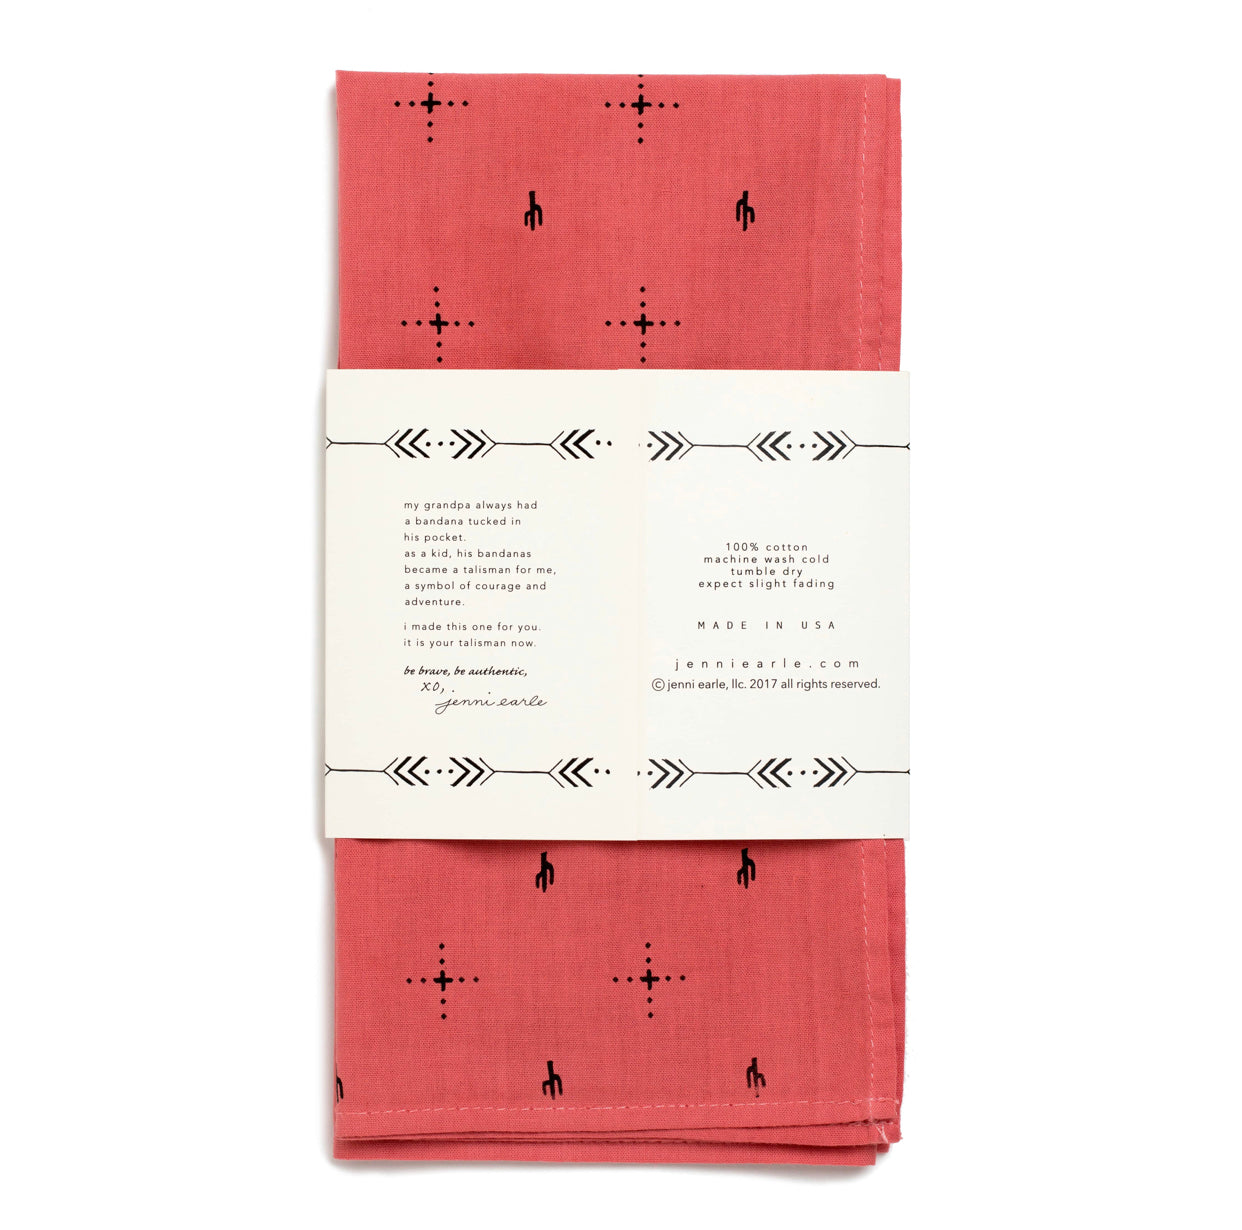 Jenni Earle - 'Explore More' Bandana